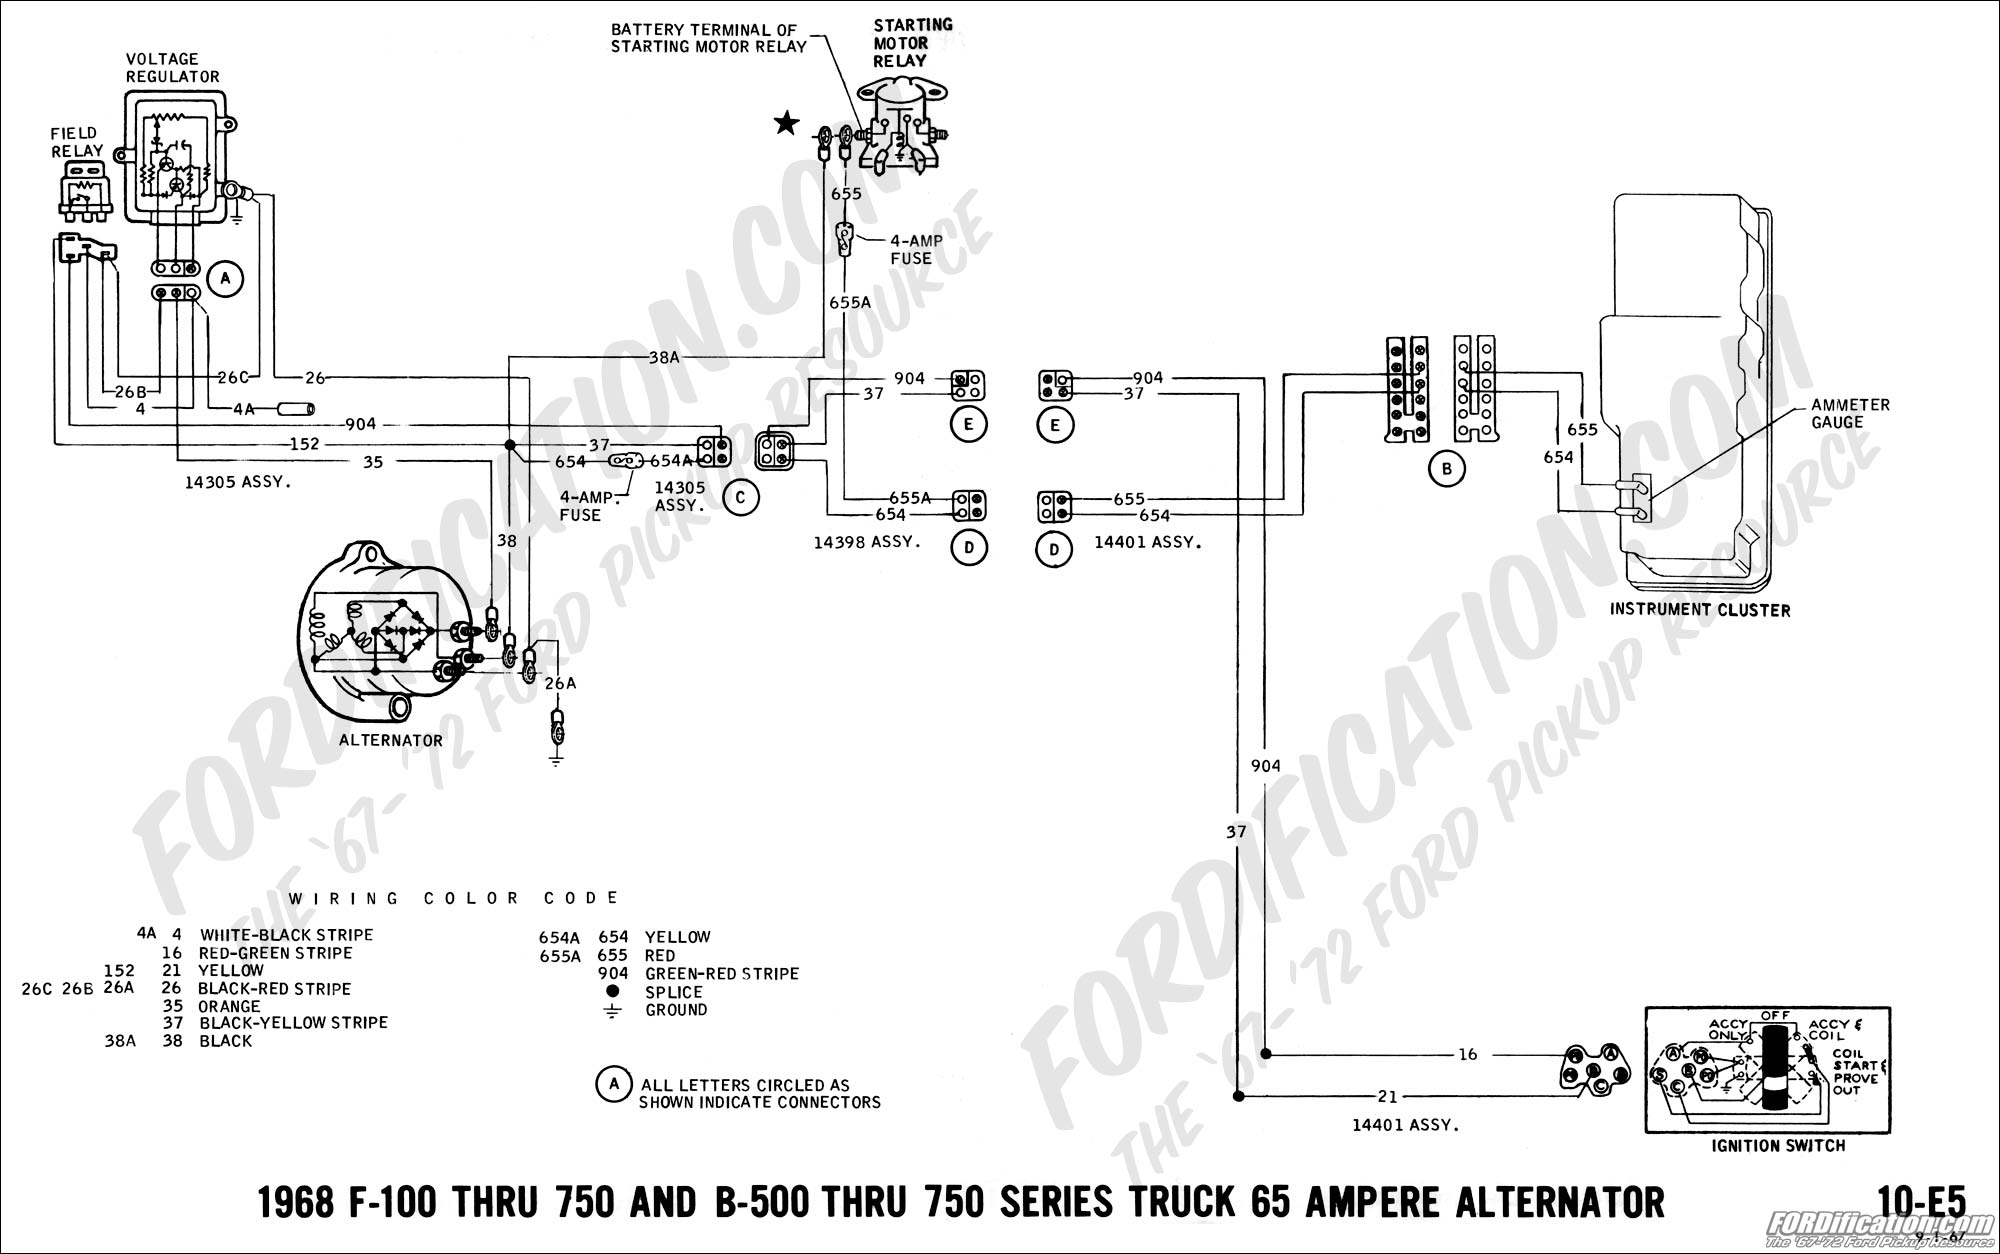 Mercedes Ignition Switch Wiring Diagram Free Download Image 1974 Mercury Outboard 1970 Enthusiast Diagrams U2022 Rh Rasalibre Co 1967 Camaro Boat